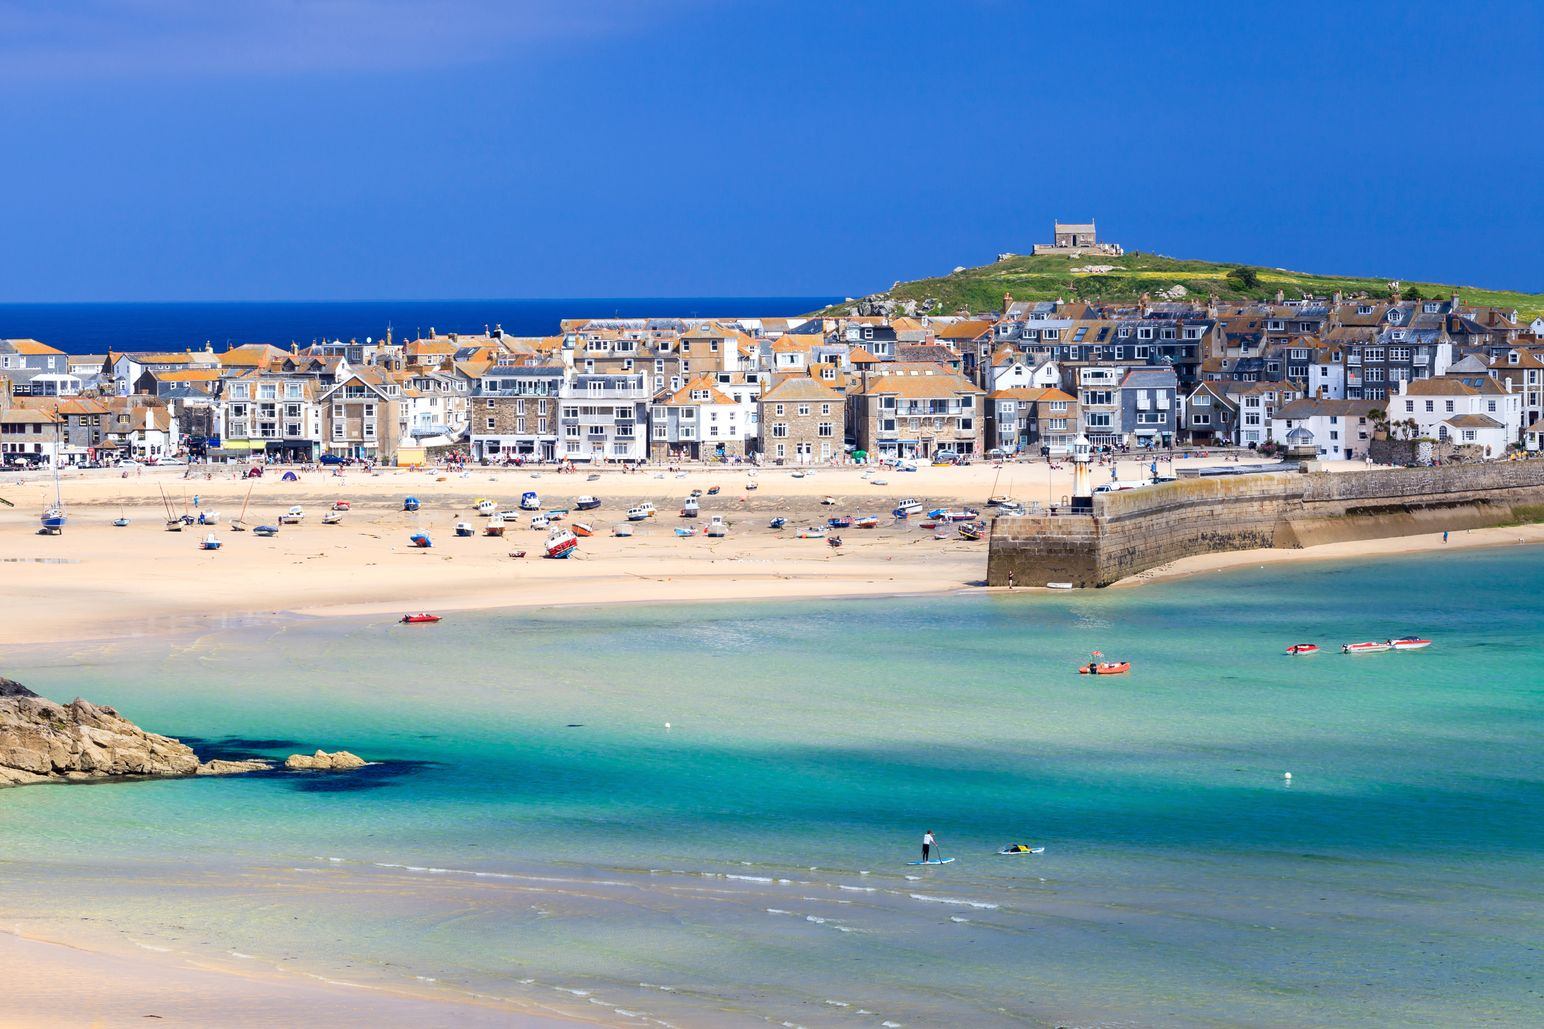 In St. Ives Bay you'll find one of the most beautiful beaches in Britain